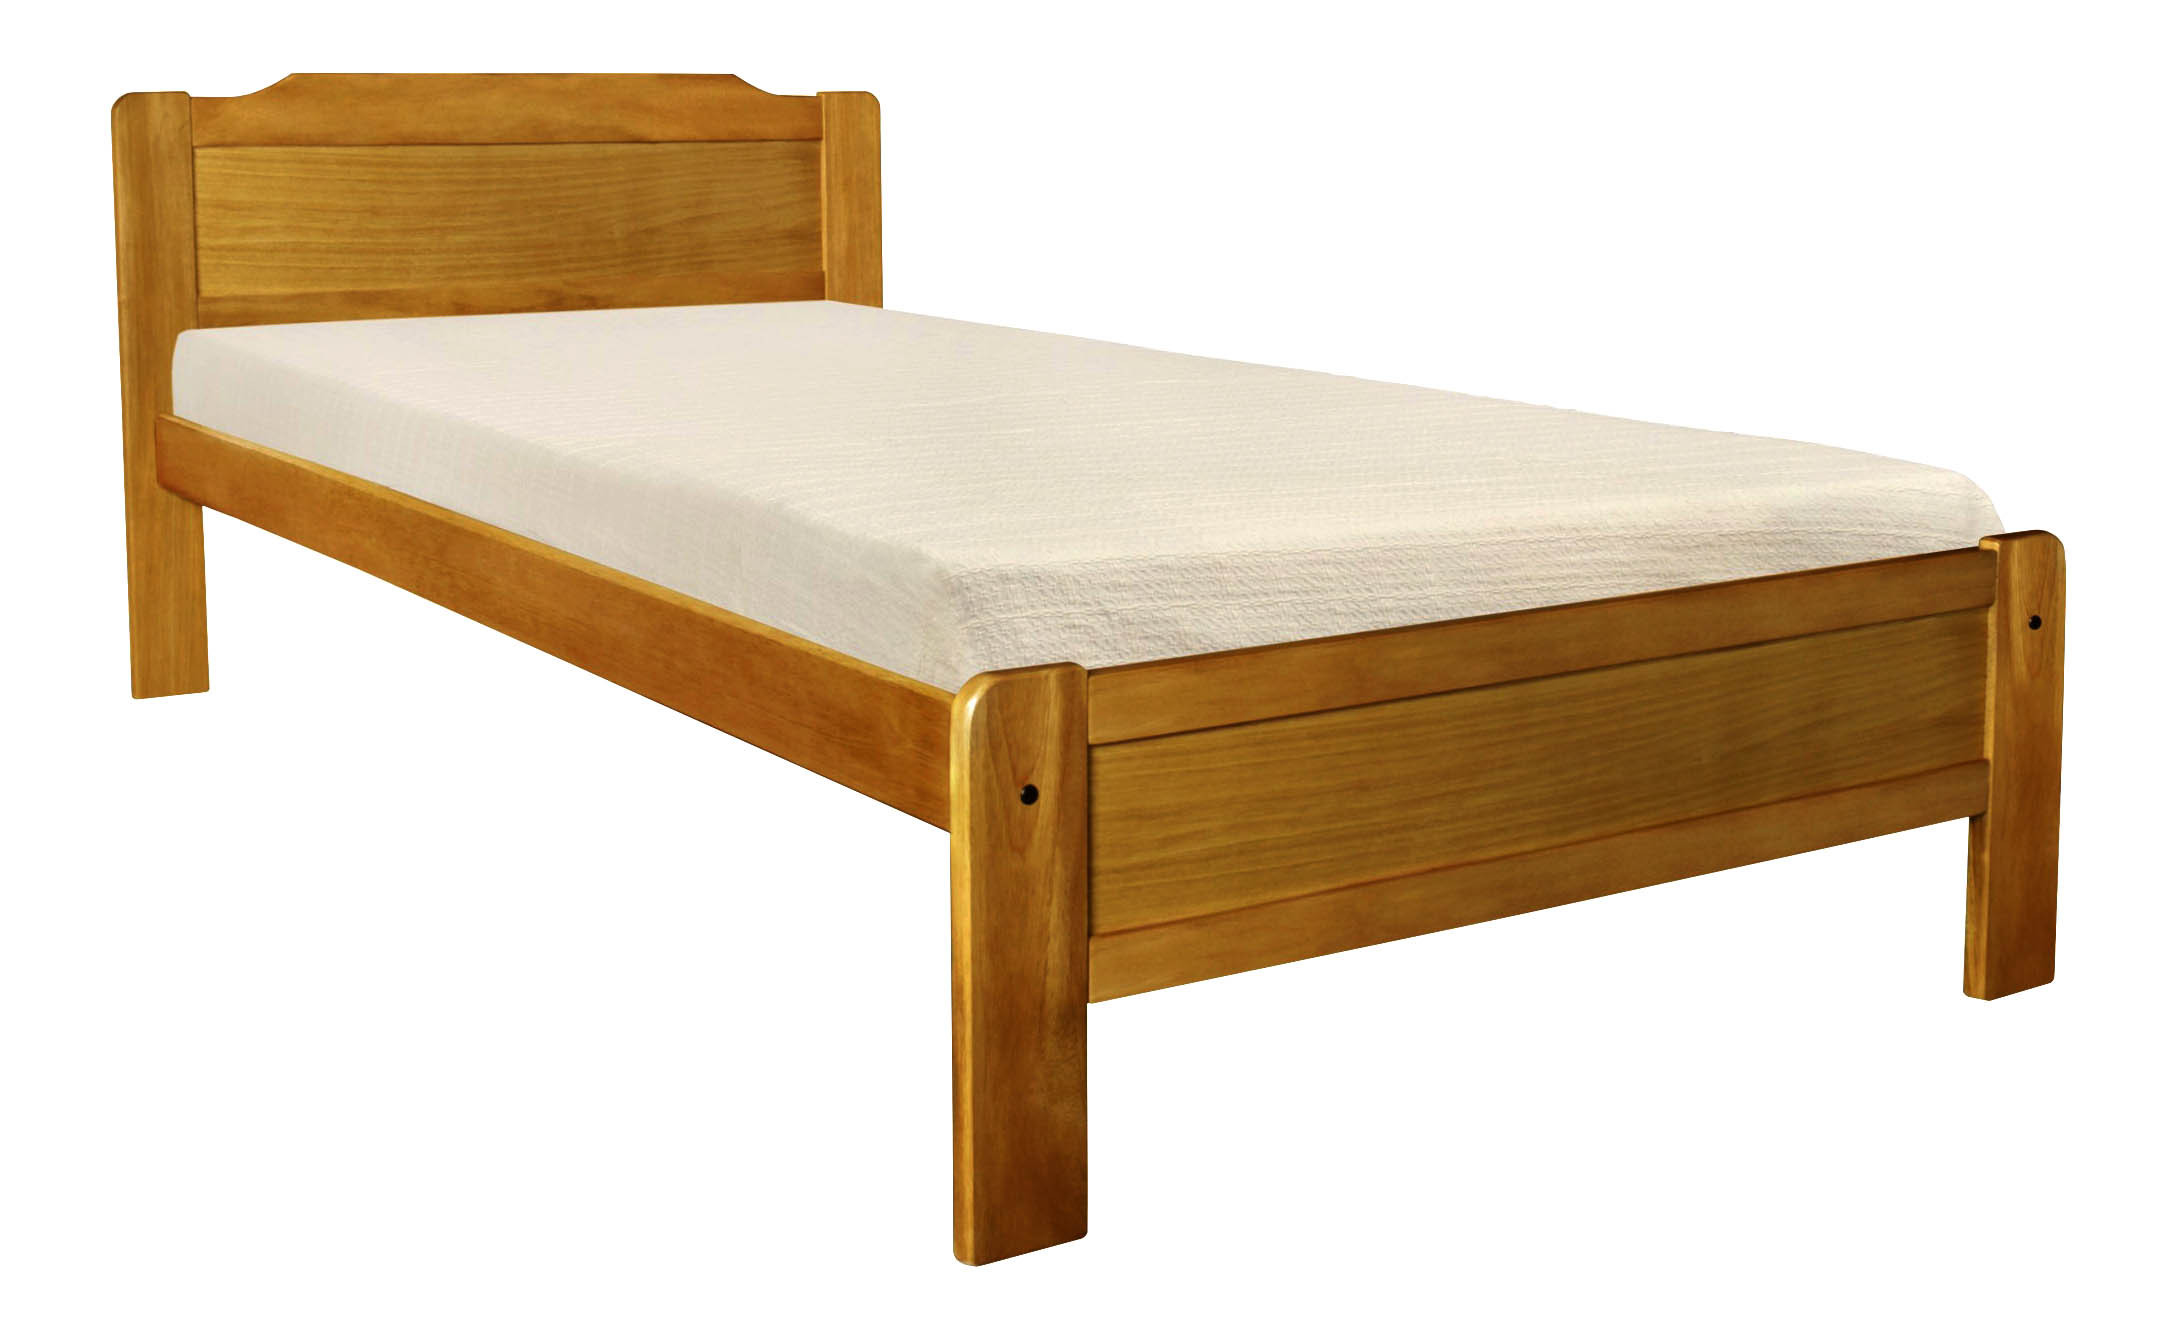 Solna Wooden Bed Frame In Single Sized Furniture Amp Home